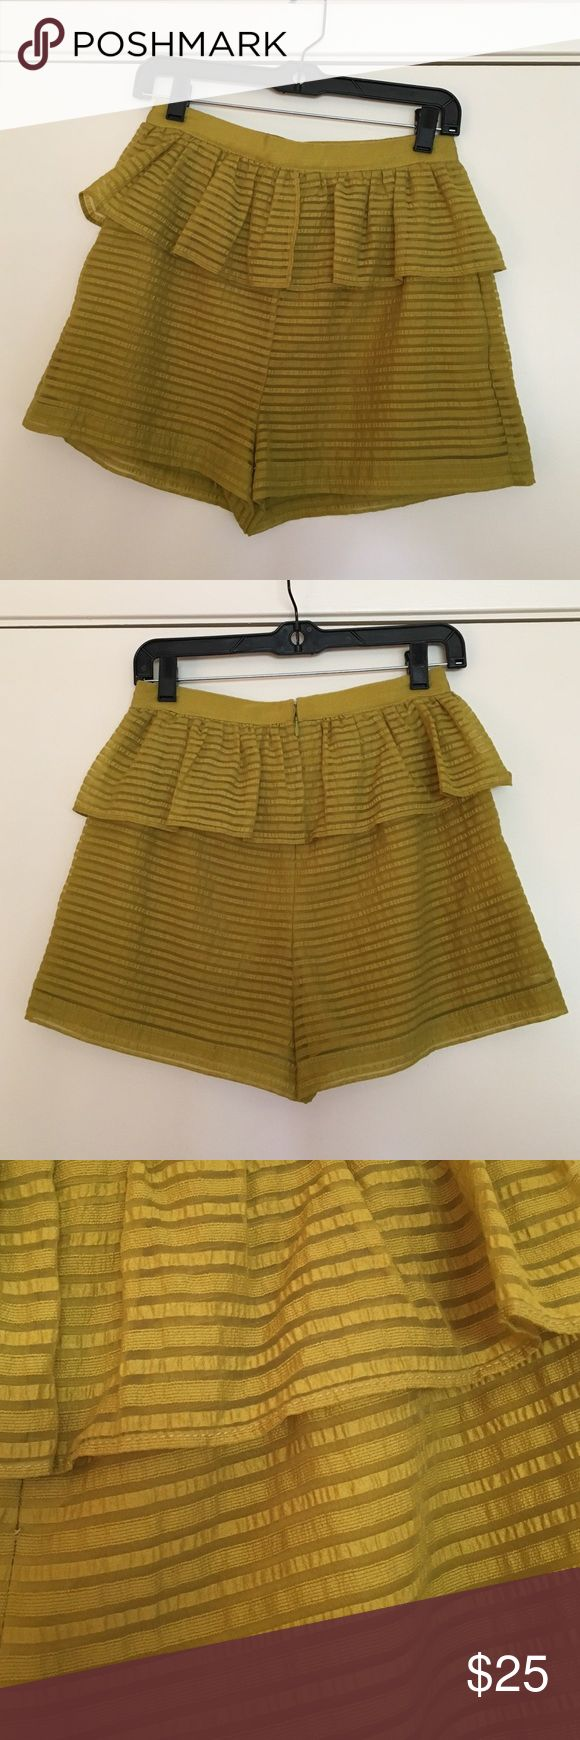 BCBGeneration Chartreuse Shorts These shorts are adorable on. The top layer flares a bit and it almost looks like a skirt. It's great for tucking in a top and the length isn't too short. I have never worn these because I outgrew them. BCBGeneration Shorts